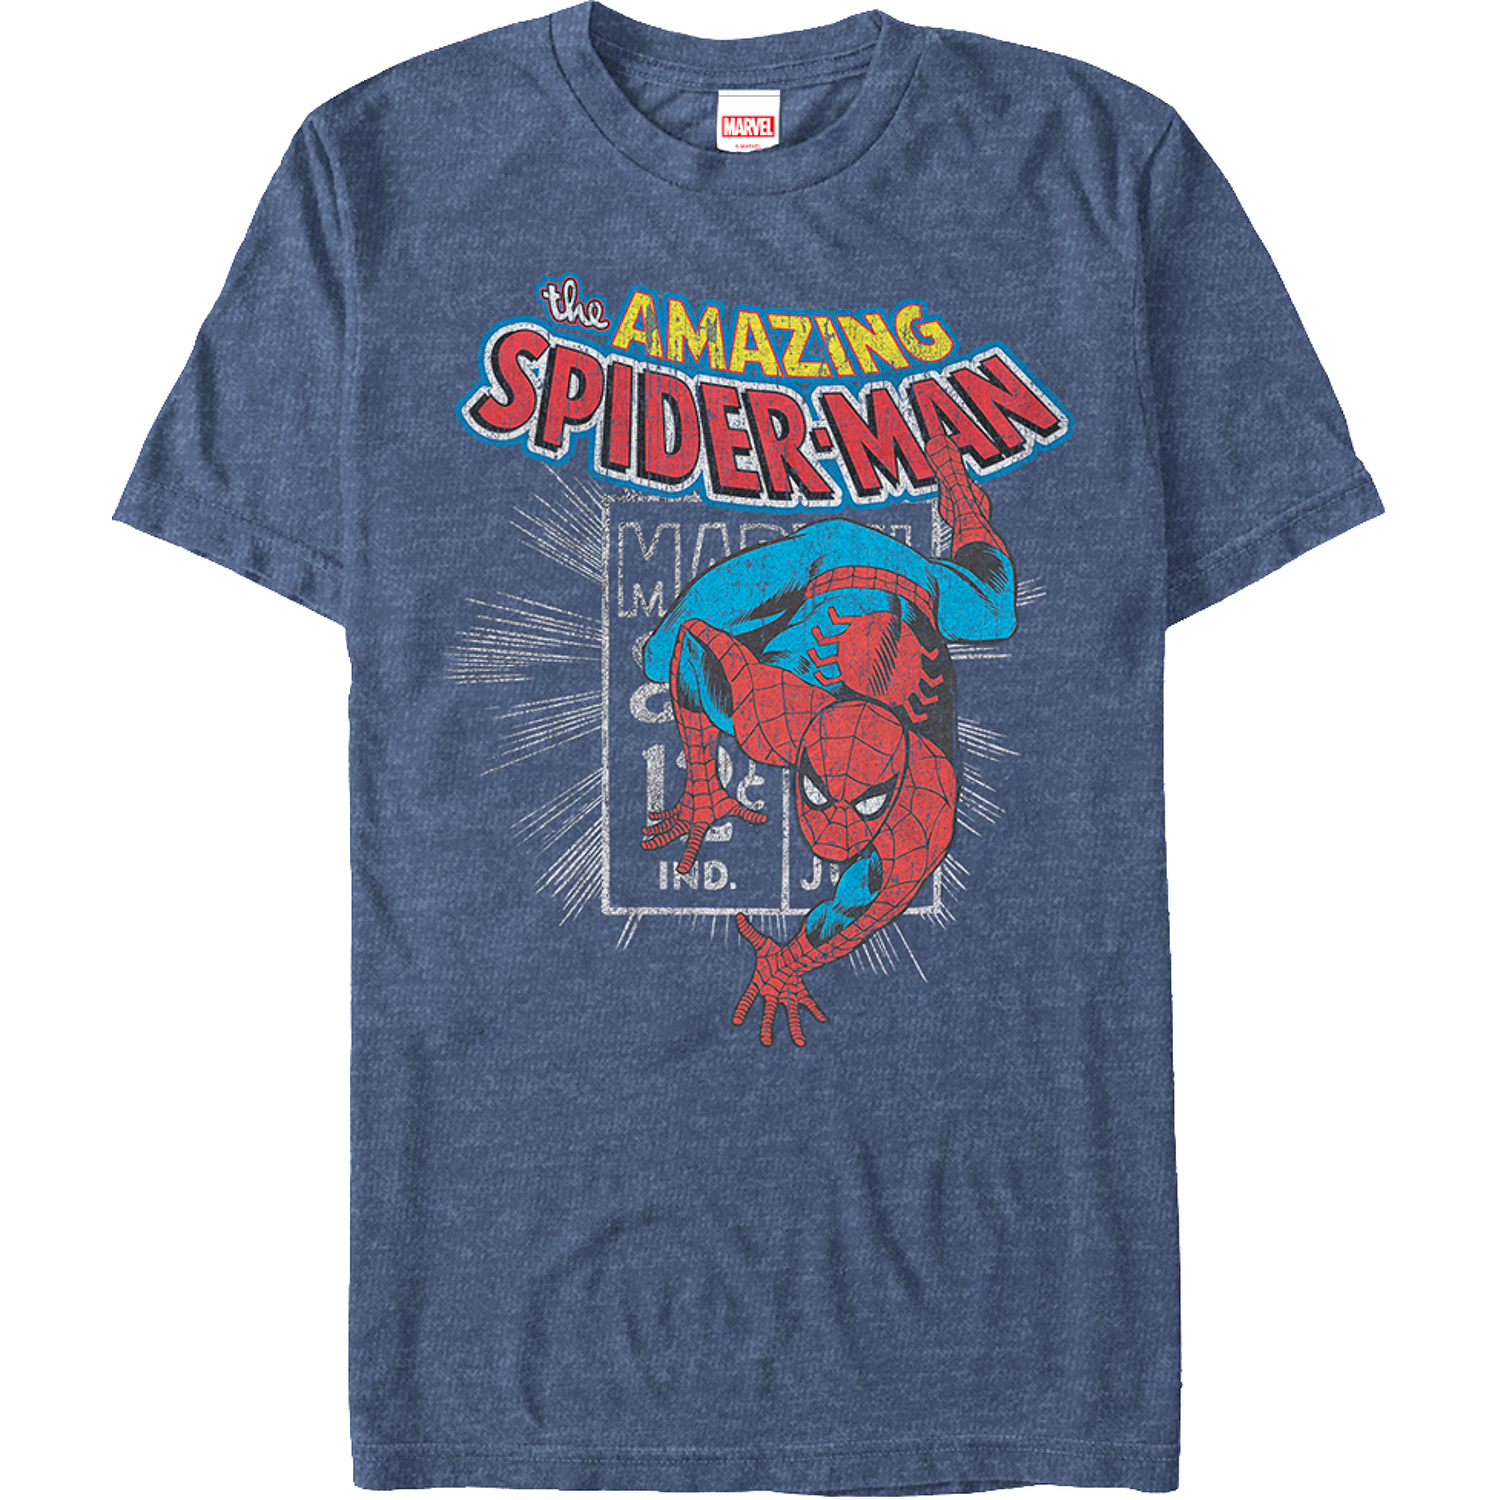 air-jordan-1-origin-story-spiderman-sneaker-tee-shirt-6